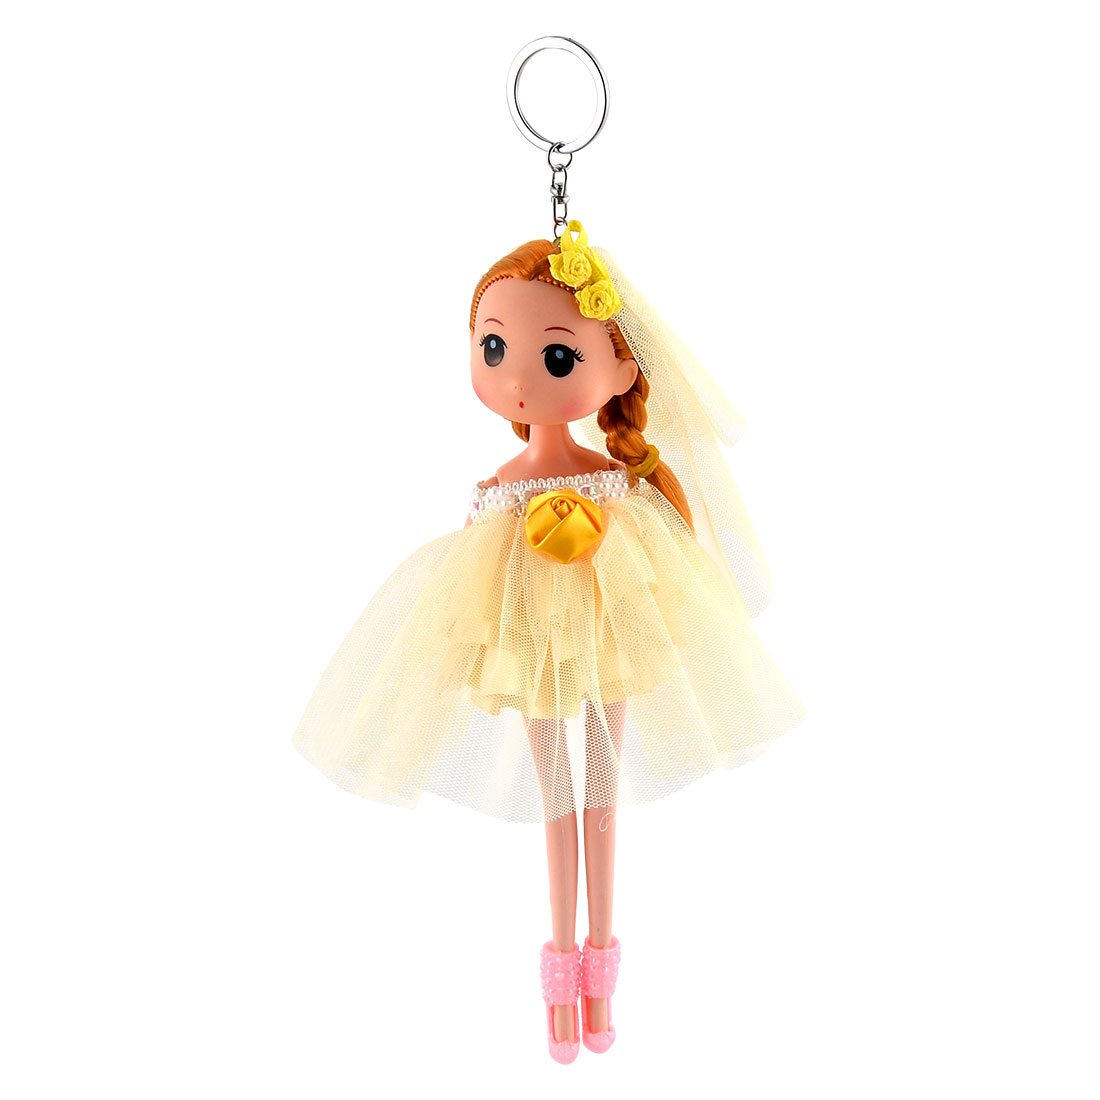 Girl Bag Wedding Dress Toy Ornament Charm Strap Doll Keychain Key Ring Yellow